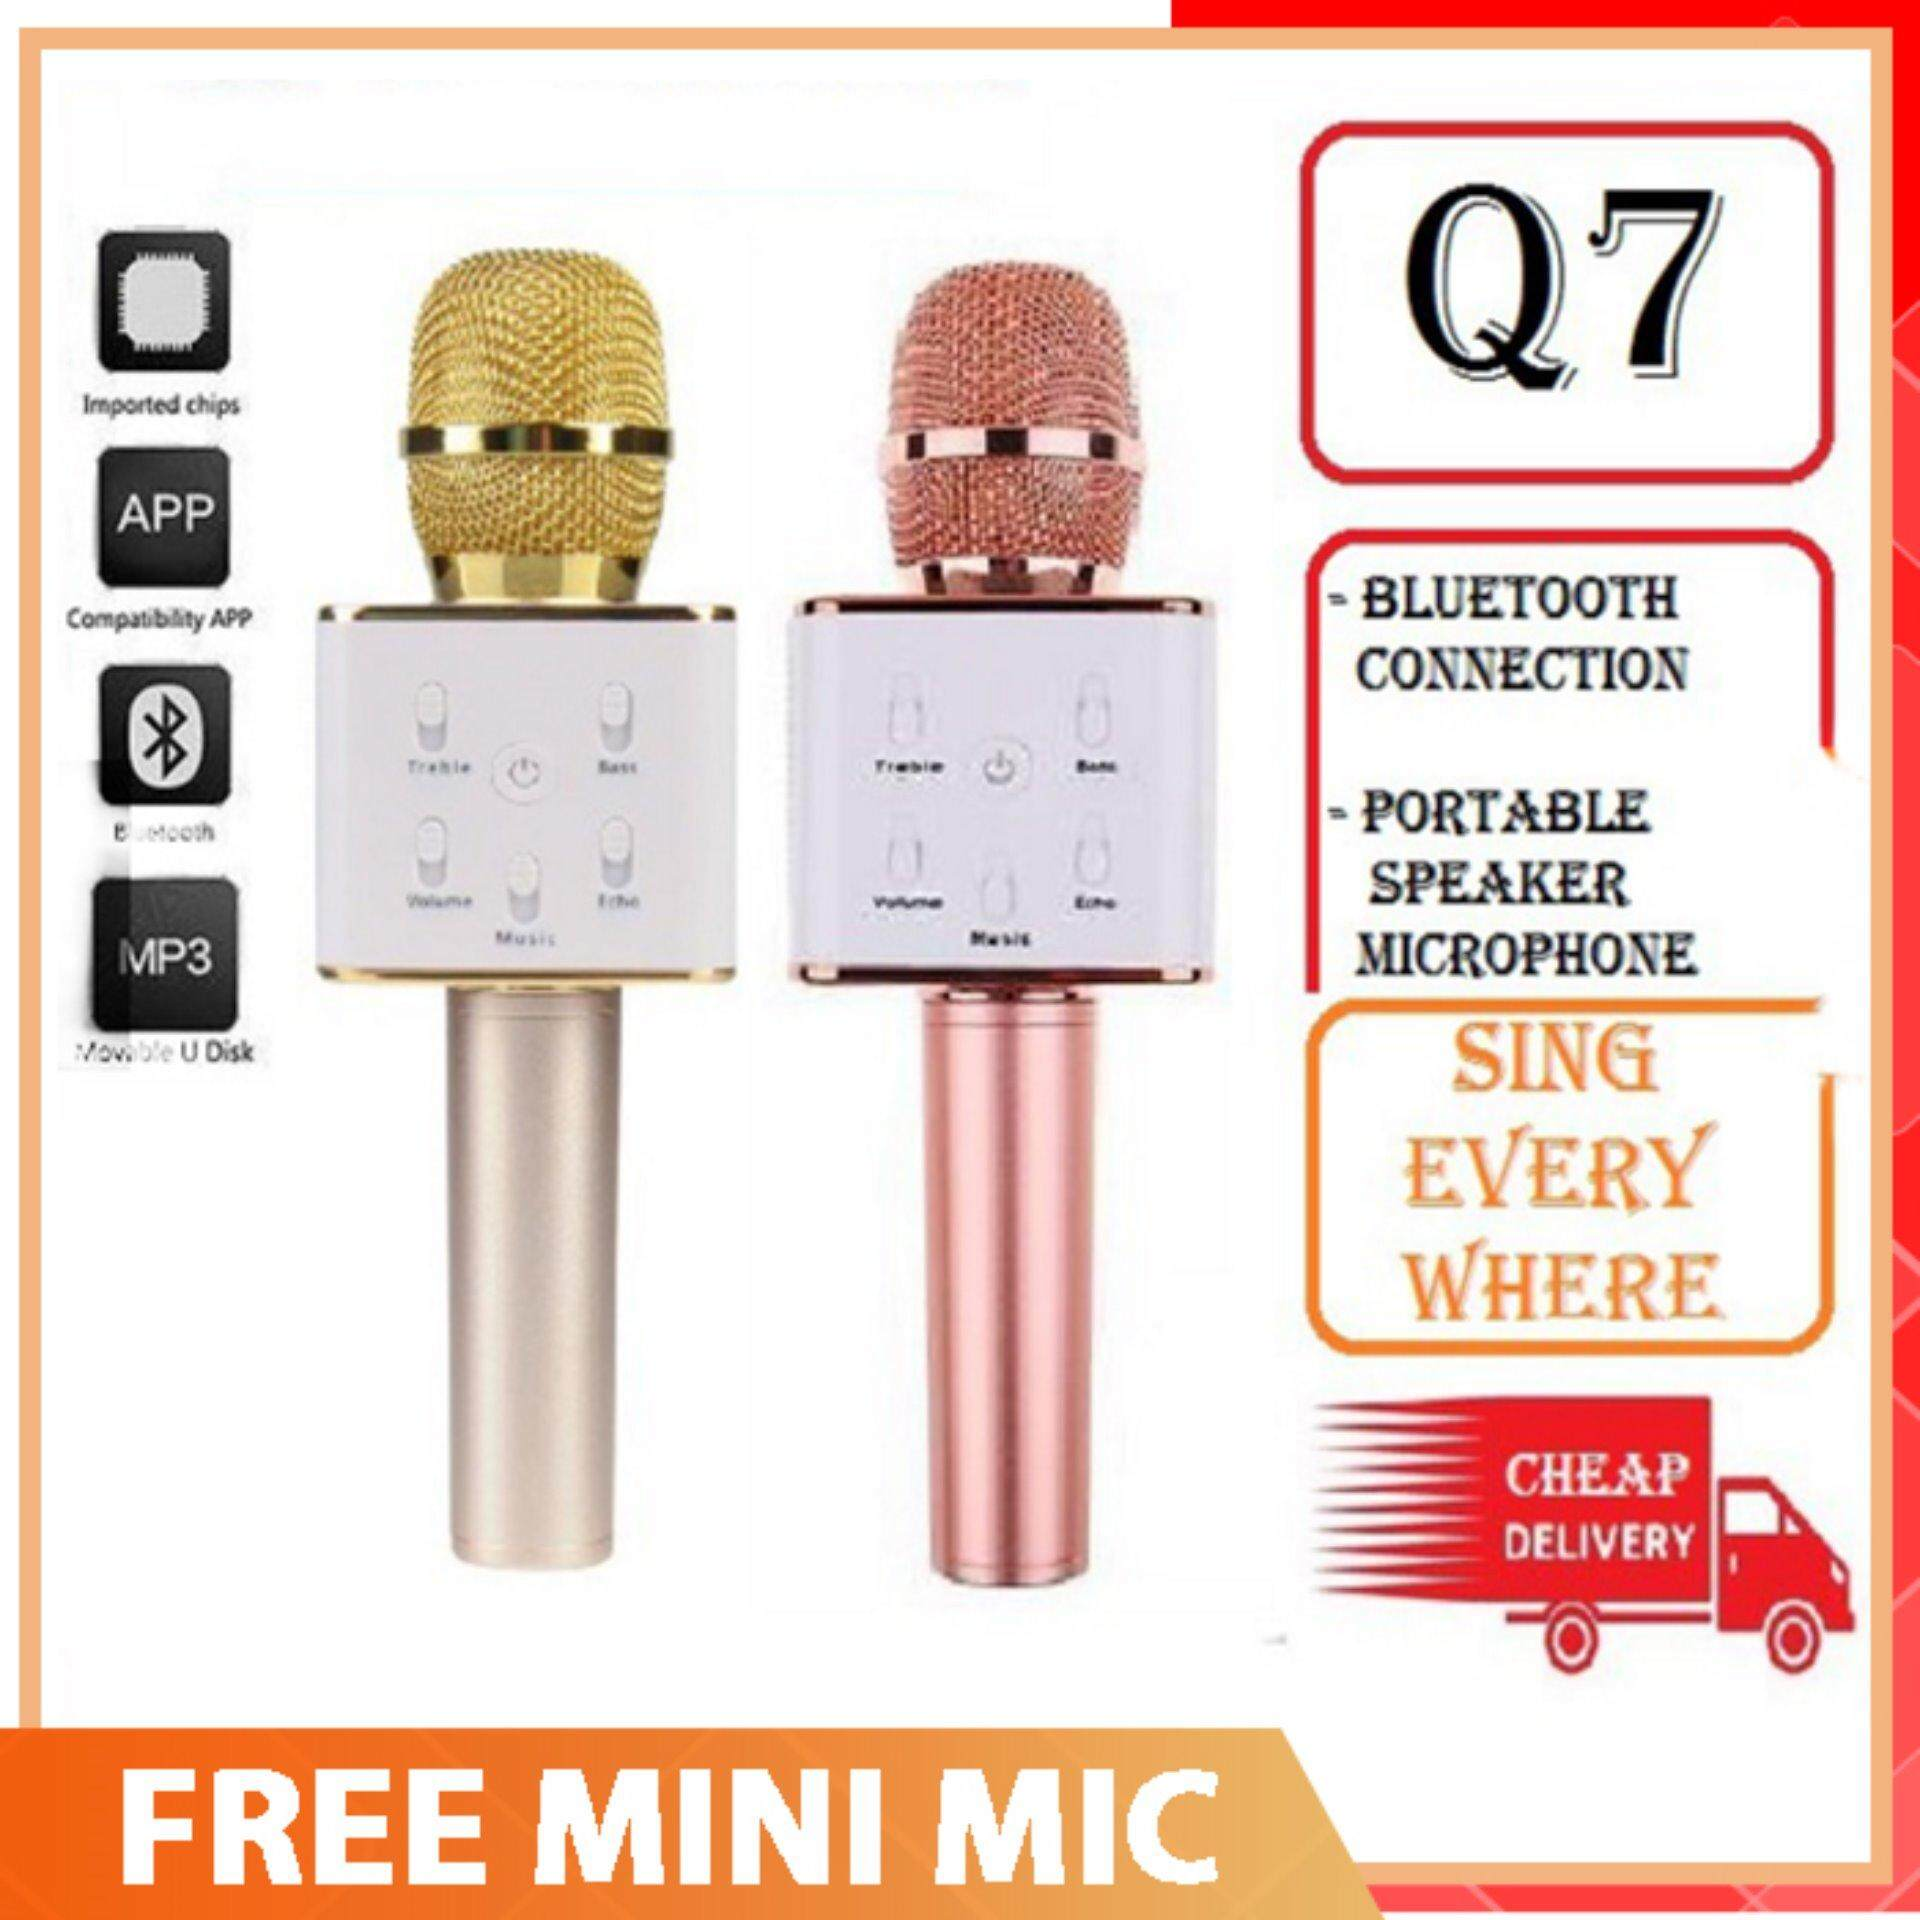 Cek Harga Micgeek Q9 Bluetooth Microphone Terbaru Malaysian Ktv Wireless With Speaker Q7 Karaoke Only Rm49 Rm 54